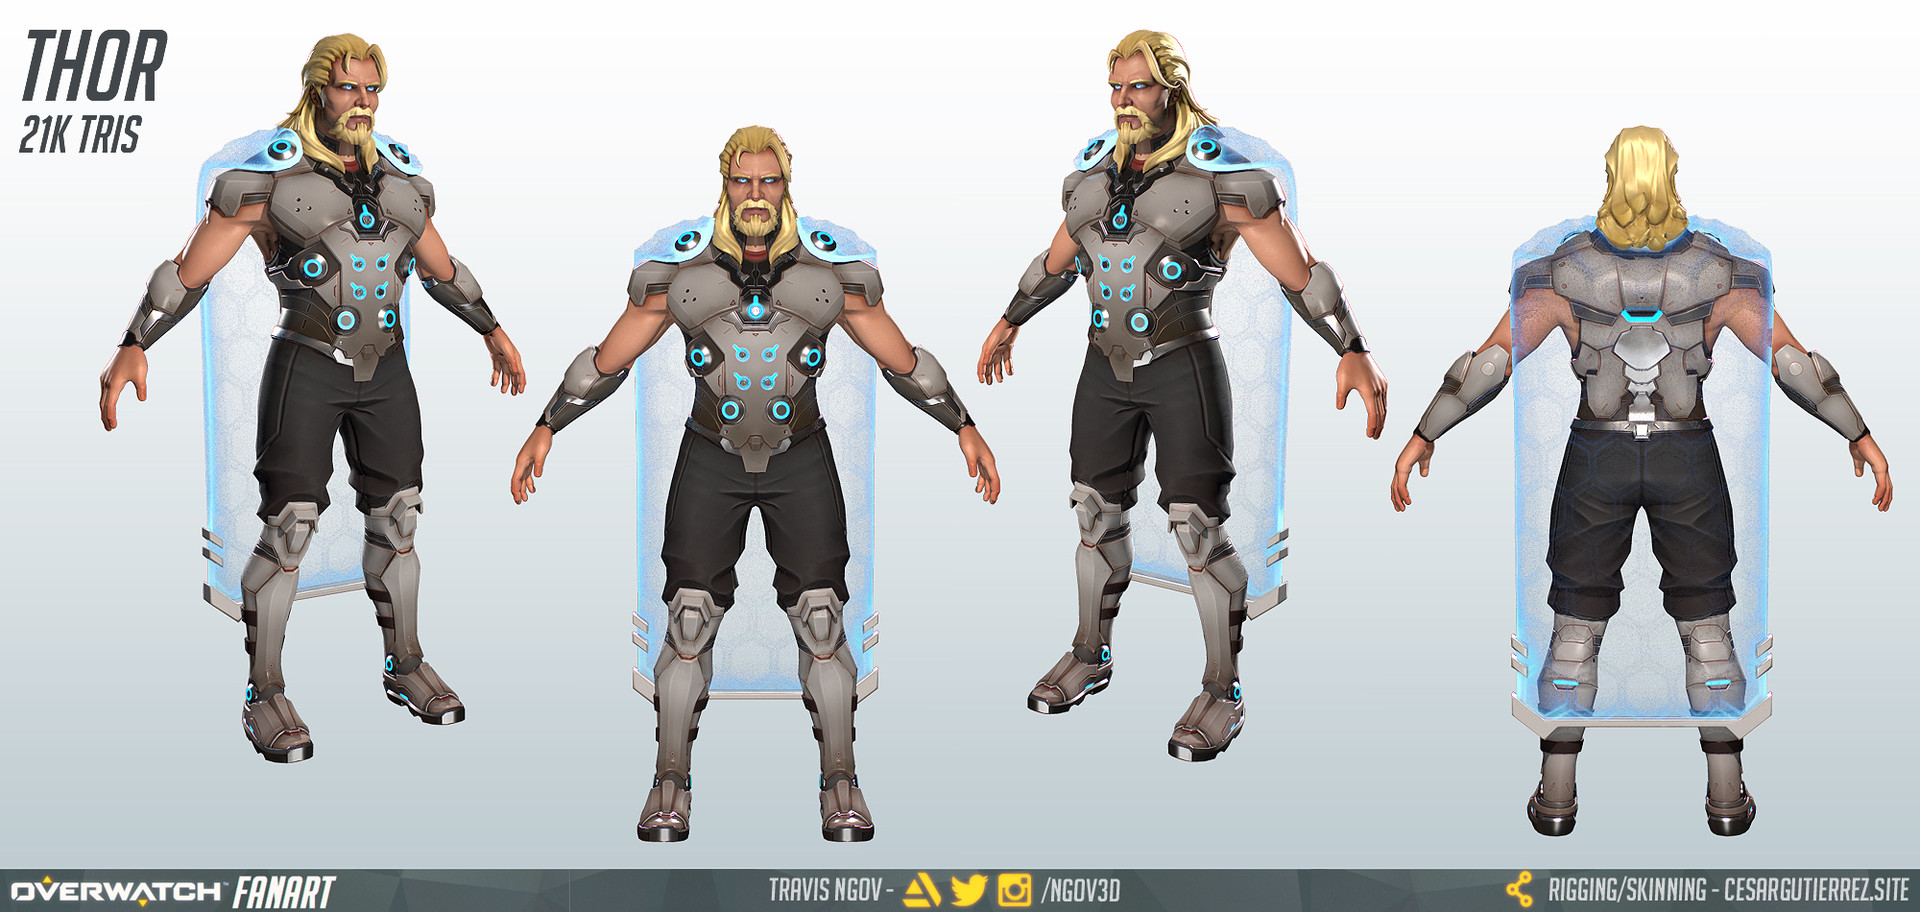 Thor - Turnaround (Tposed +Alternative Cape)